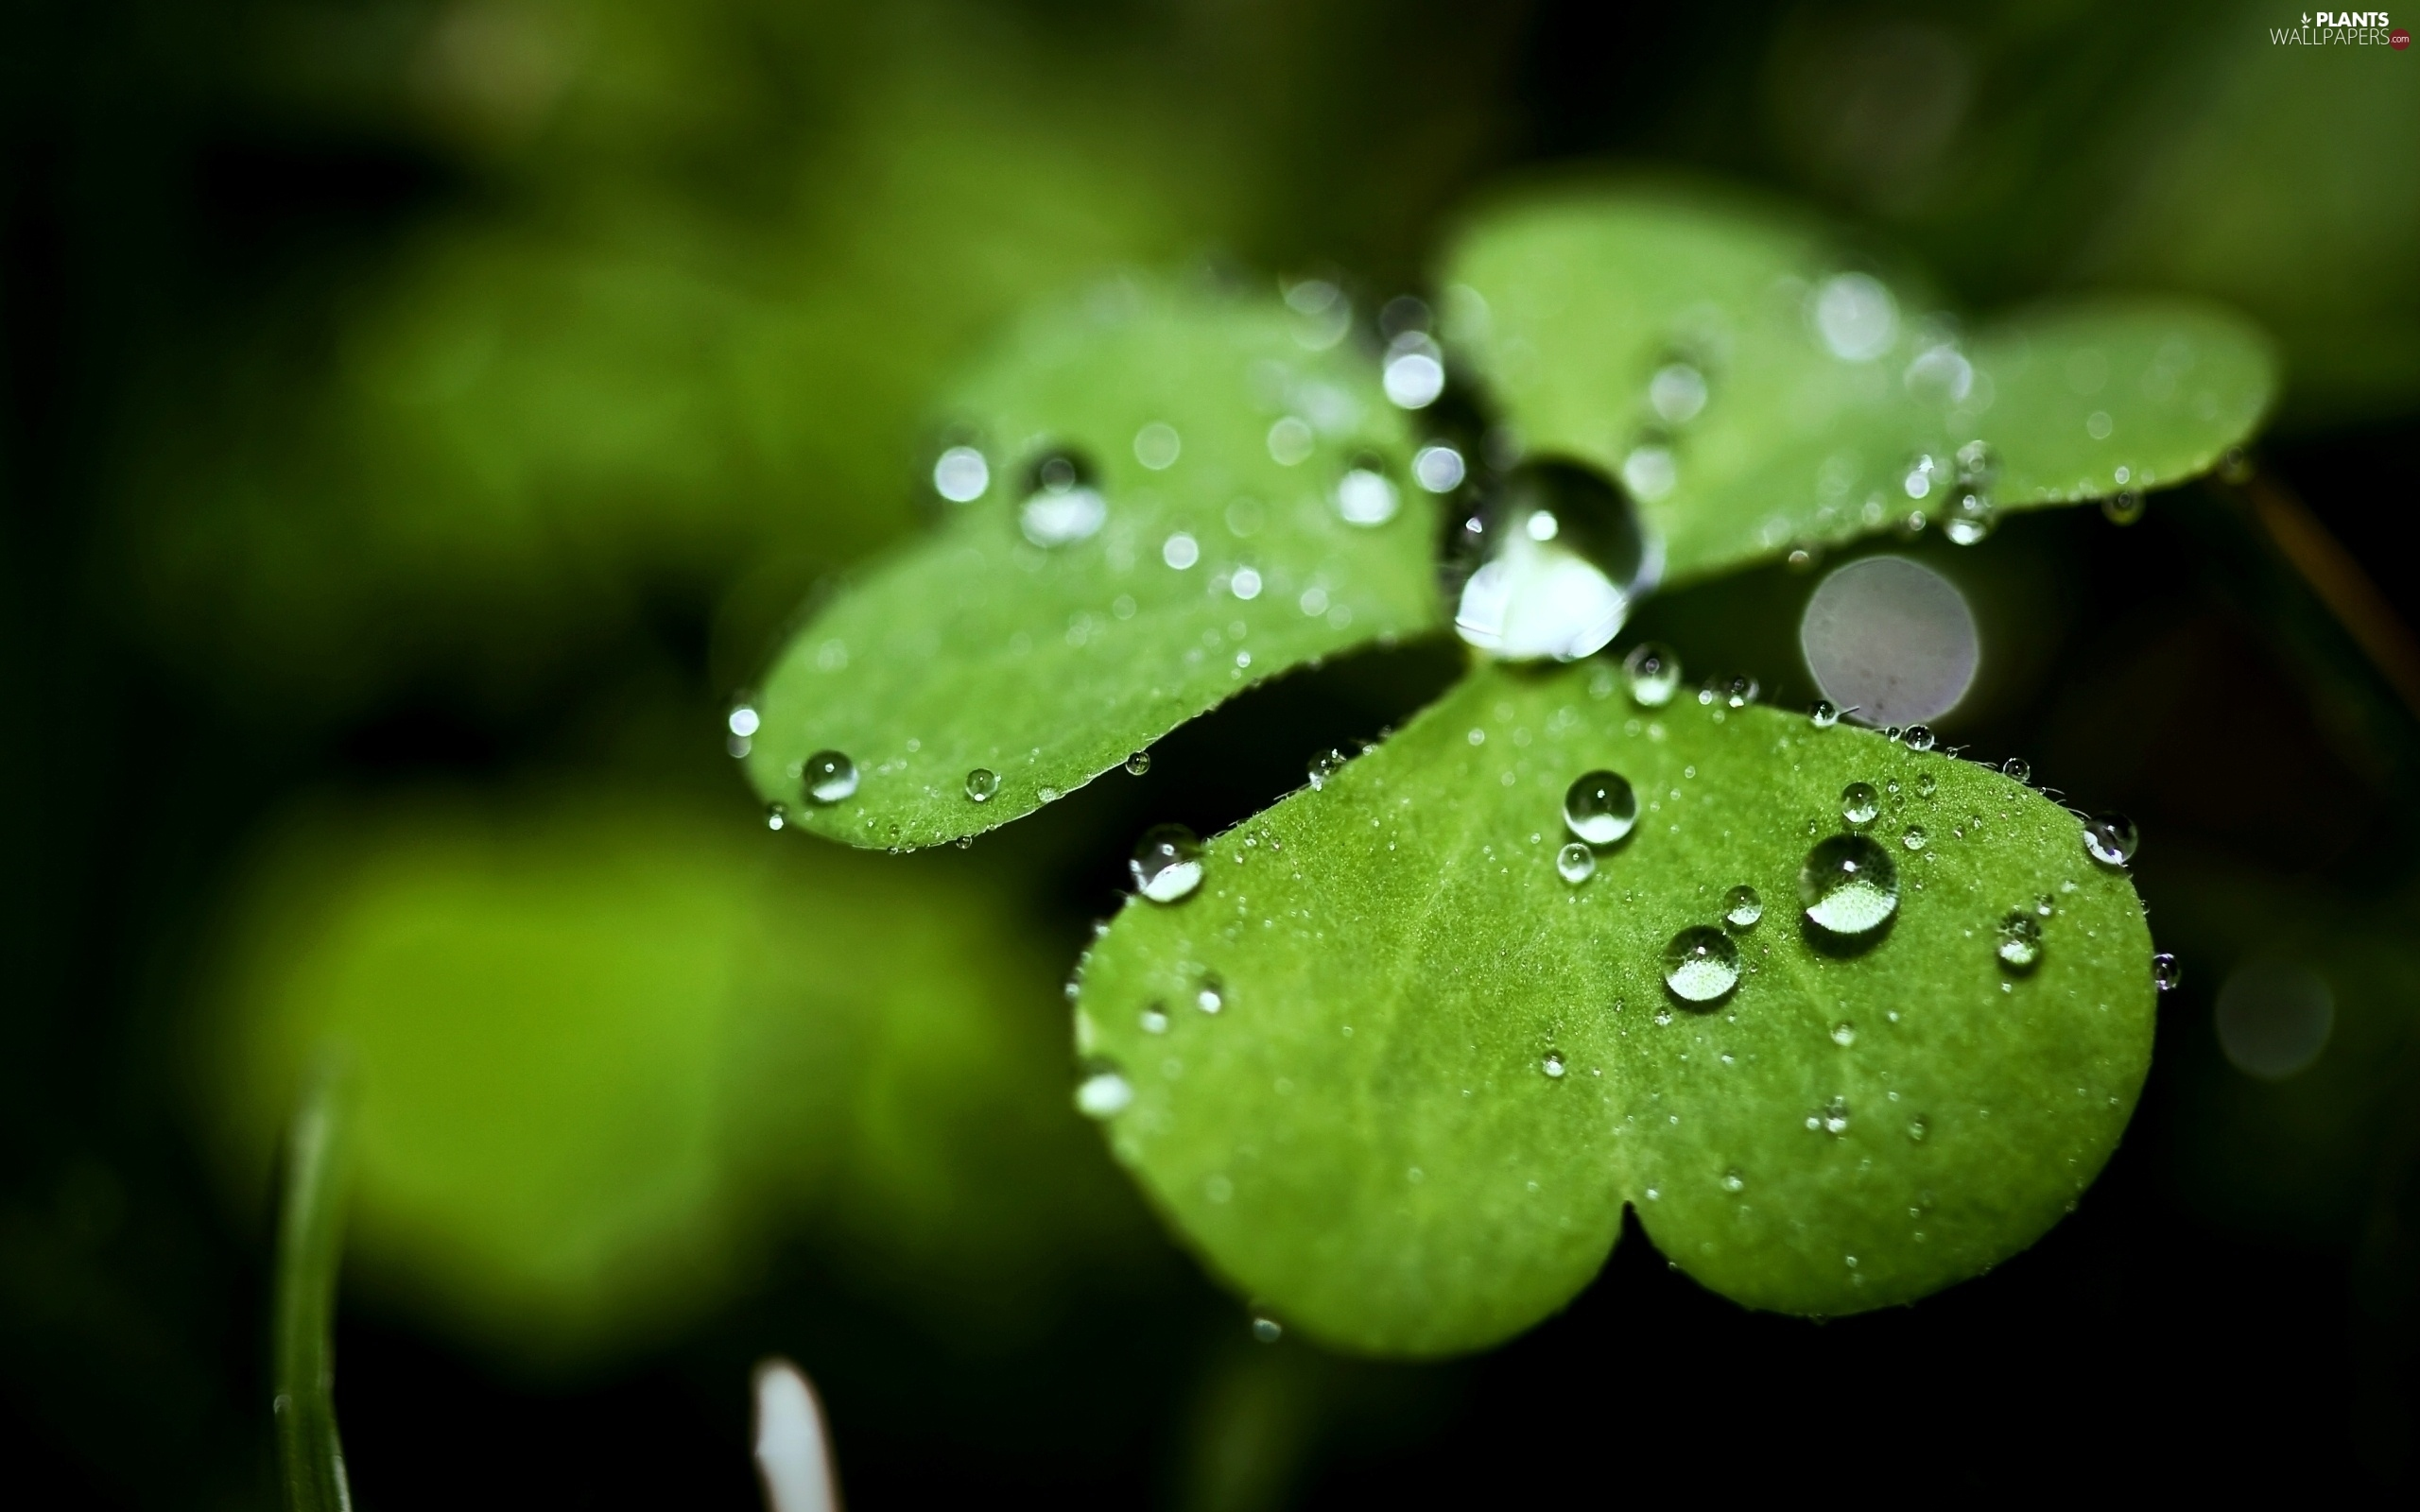 clover, drops, rain, leaves